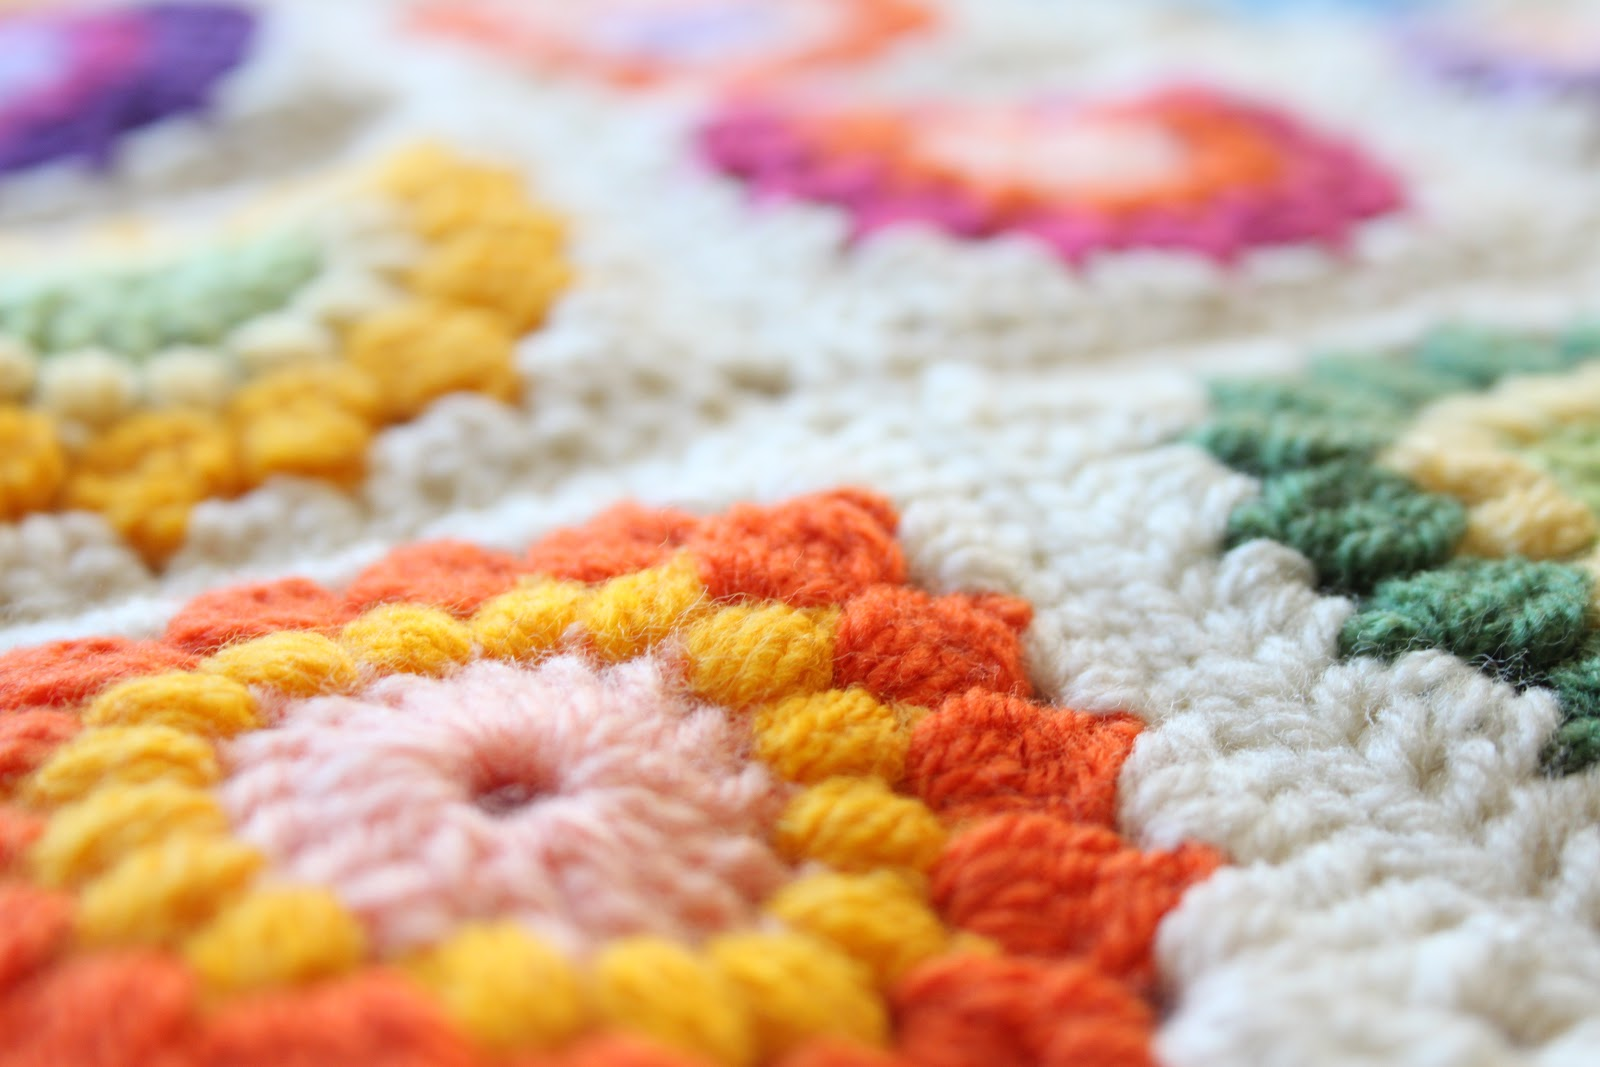 Nittybits Sunburst Granny Square Blanket Tutorial Crochet Patterns With Diagrams Sunday January 6 2013